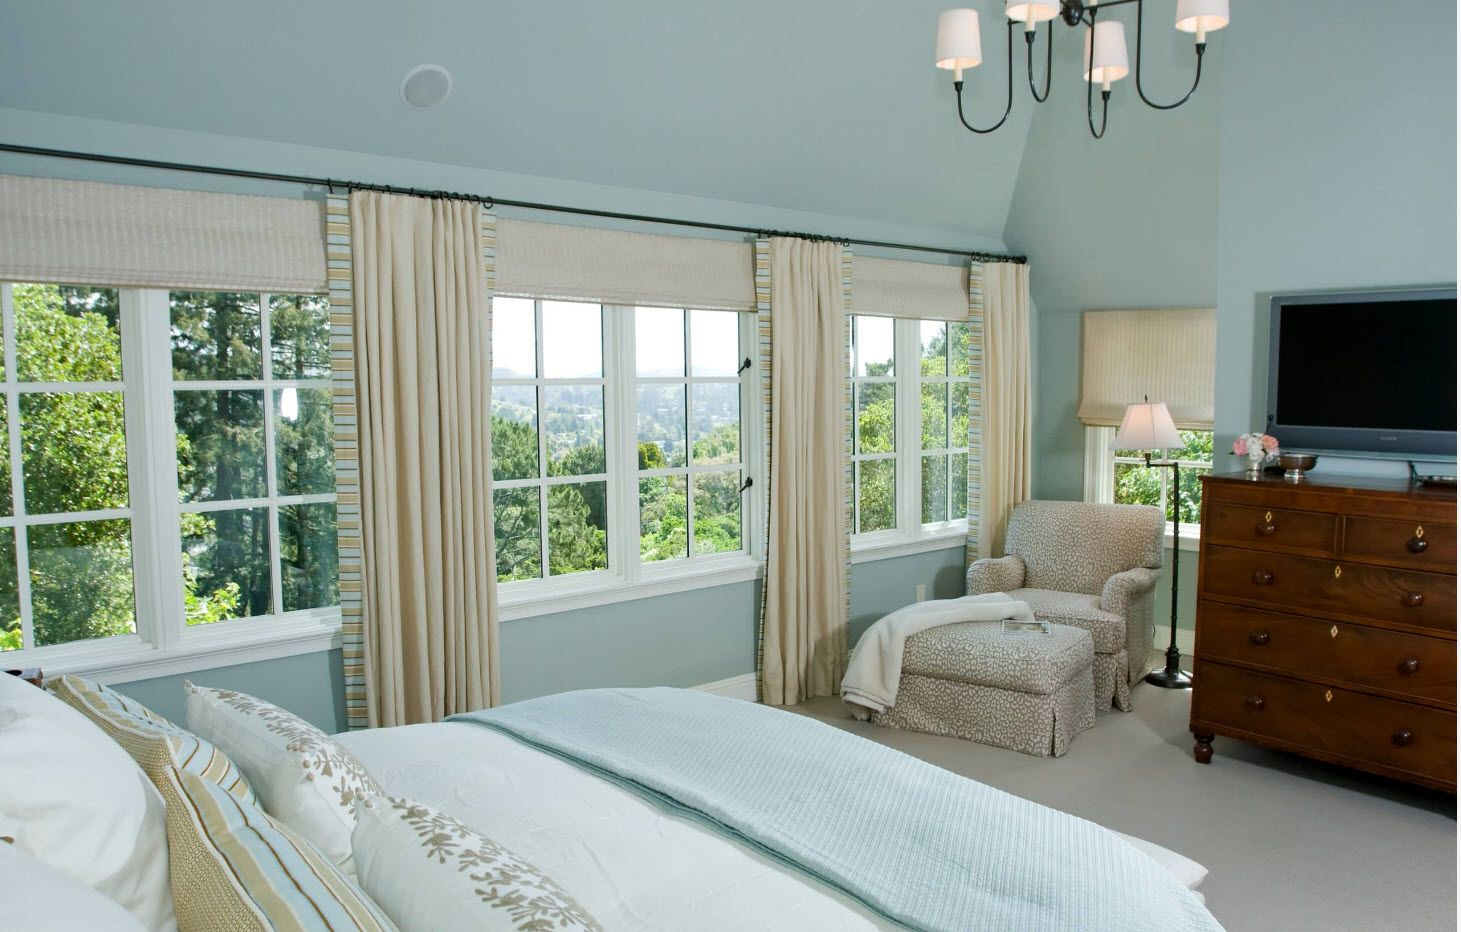 Light blue bedroom color with creamy brown draperies